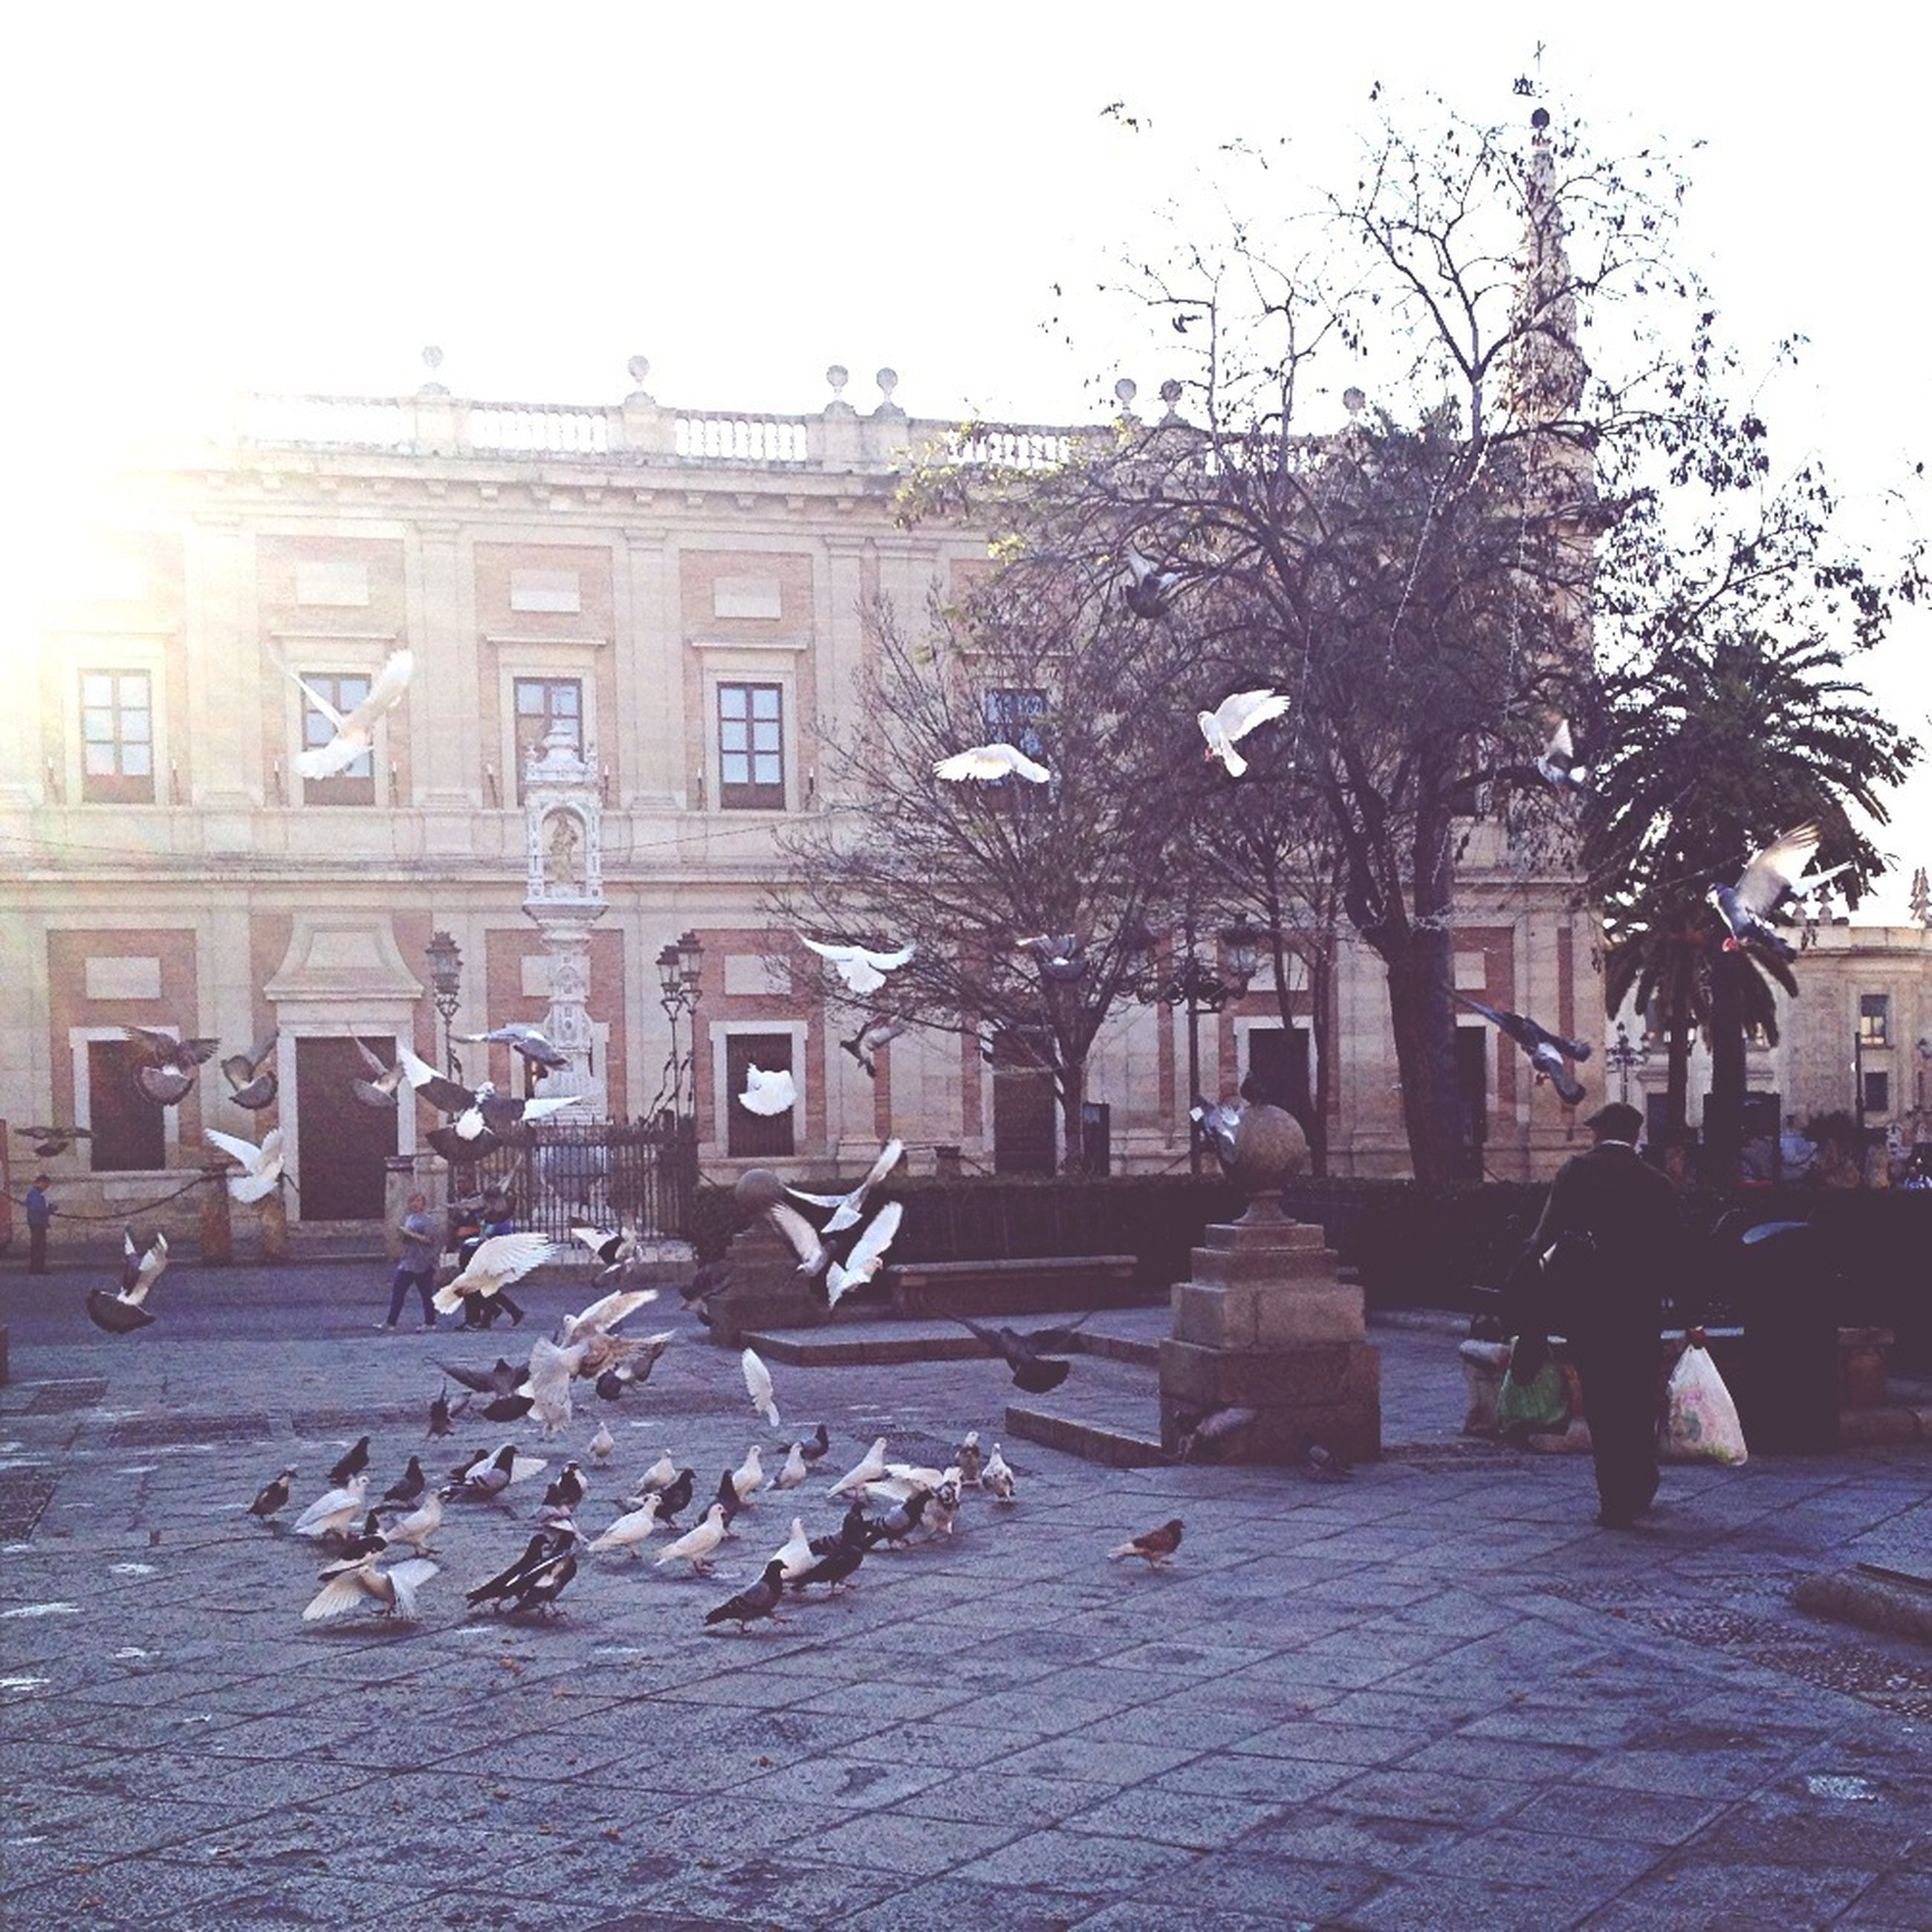 building exterior, architecture, built structure, bird, city, building, clear sky, town square, day, tree, outdoors, sky, statue, incidental people, street, bare tree, large group of people, flock of birds, city life